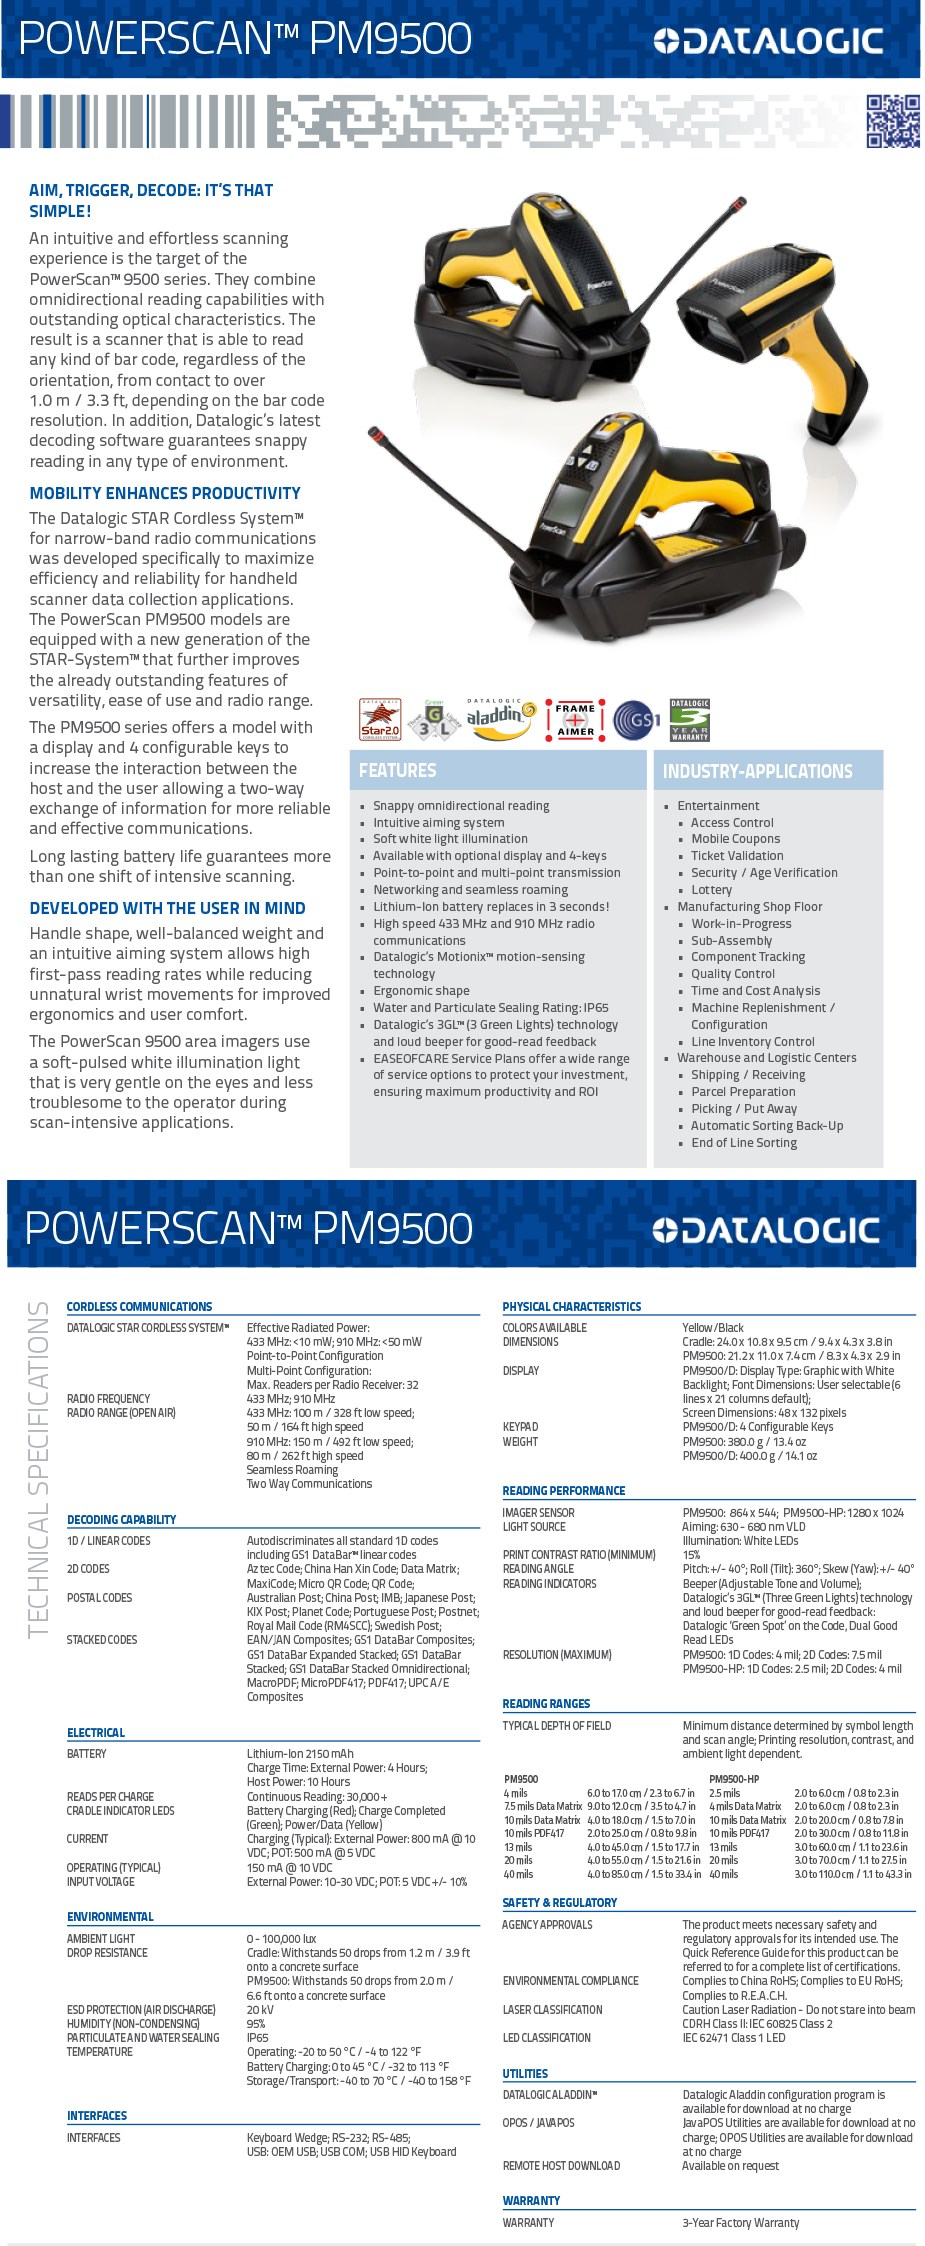 Datalogic Powerscan PM9500 Scanner with Base, Charger, PSU and Interface Cable  - Overview 1